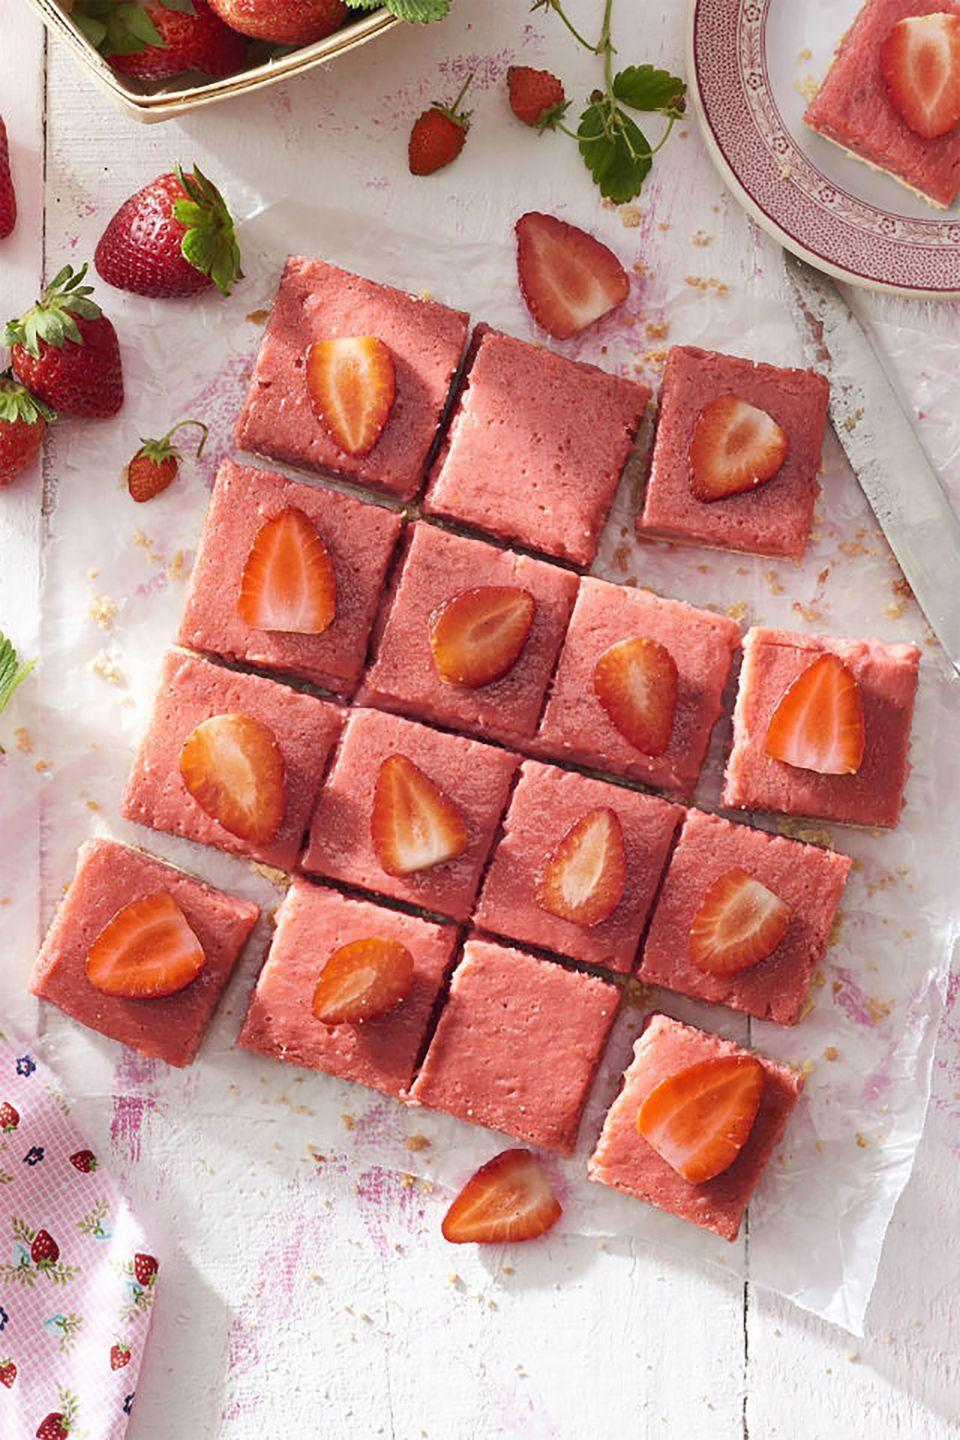 """<p>Shortbread bars get a lot of their flavor from the generous amount of butter and sugar, but this recipe adds in a smart helping of fresh spring fruit.</p><p><strong><a href=""""https://www.countryliving.com/food-drinks/recipes/a41984/strawberry-rhubarb-shortbread-bars-recipe/"""" rel=""""nofollow noopener"""" target=""""_blank"""" data-ylk=""""slk:Get the recipe"""" class=""""link rapid-noclick-resp"""">Get the recipe</a>.</strong></p><p><strong><a class=""""link rapid-noclick-resp"""" href=""""https://www.amazon.com/Wilton-Industries-Perfect-Results-Cooling/dp/B003W0UNM0?tag=syn-yahoo-20&ascsubtag=%5Bartid%7C10050.g.32944821%5Bsrc%7Cyahoo-us"""" rel=""""nofollow noopener"""" target=""""_blank"""" data-ylk=""""slk:SHOP COOLING RACKS"""">SHOP COOLING RACKS</a><br></strong></p>"""